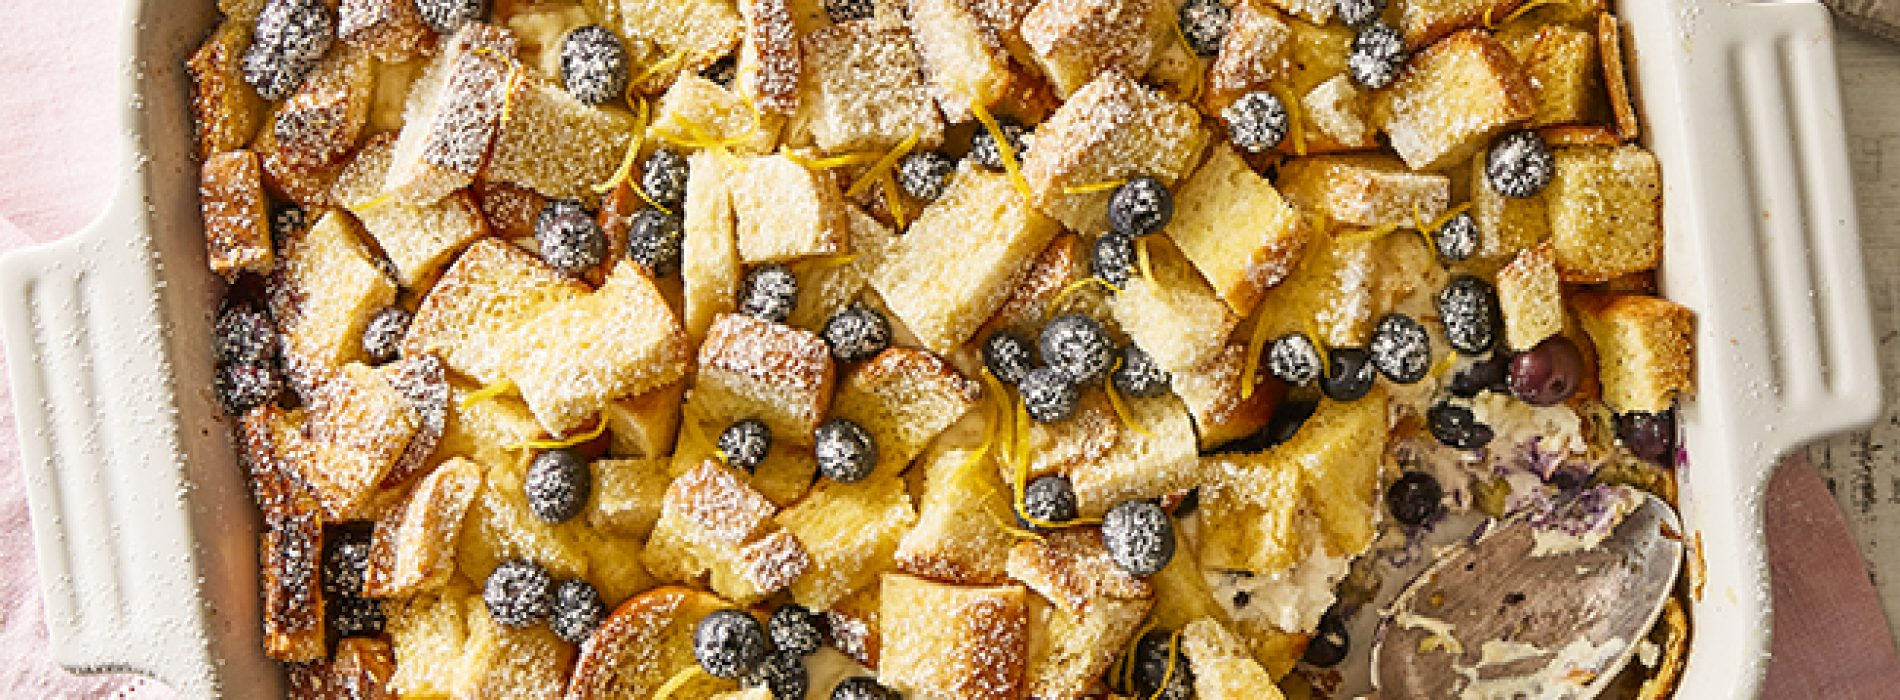 Baked Blueberry Cheesecake French Toast